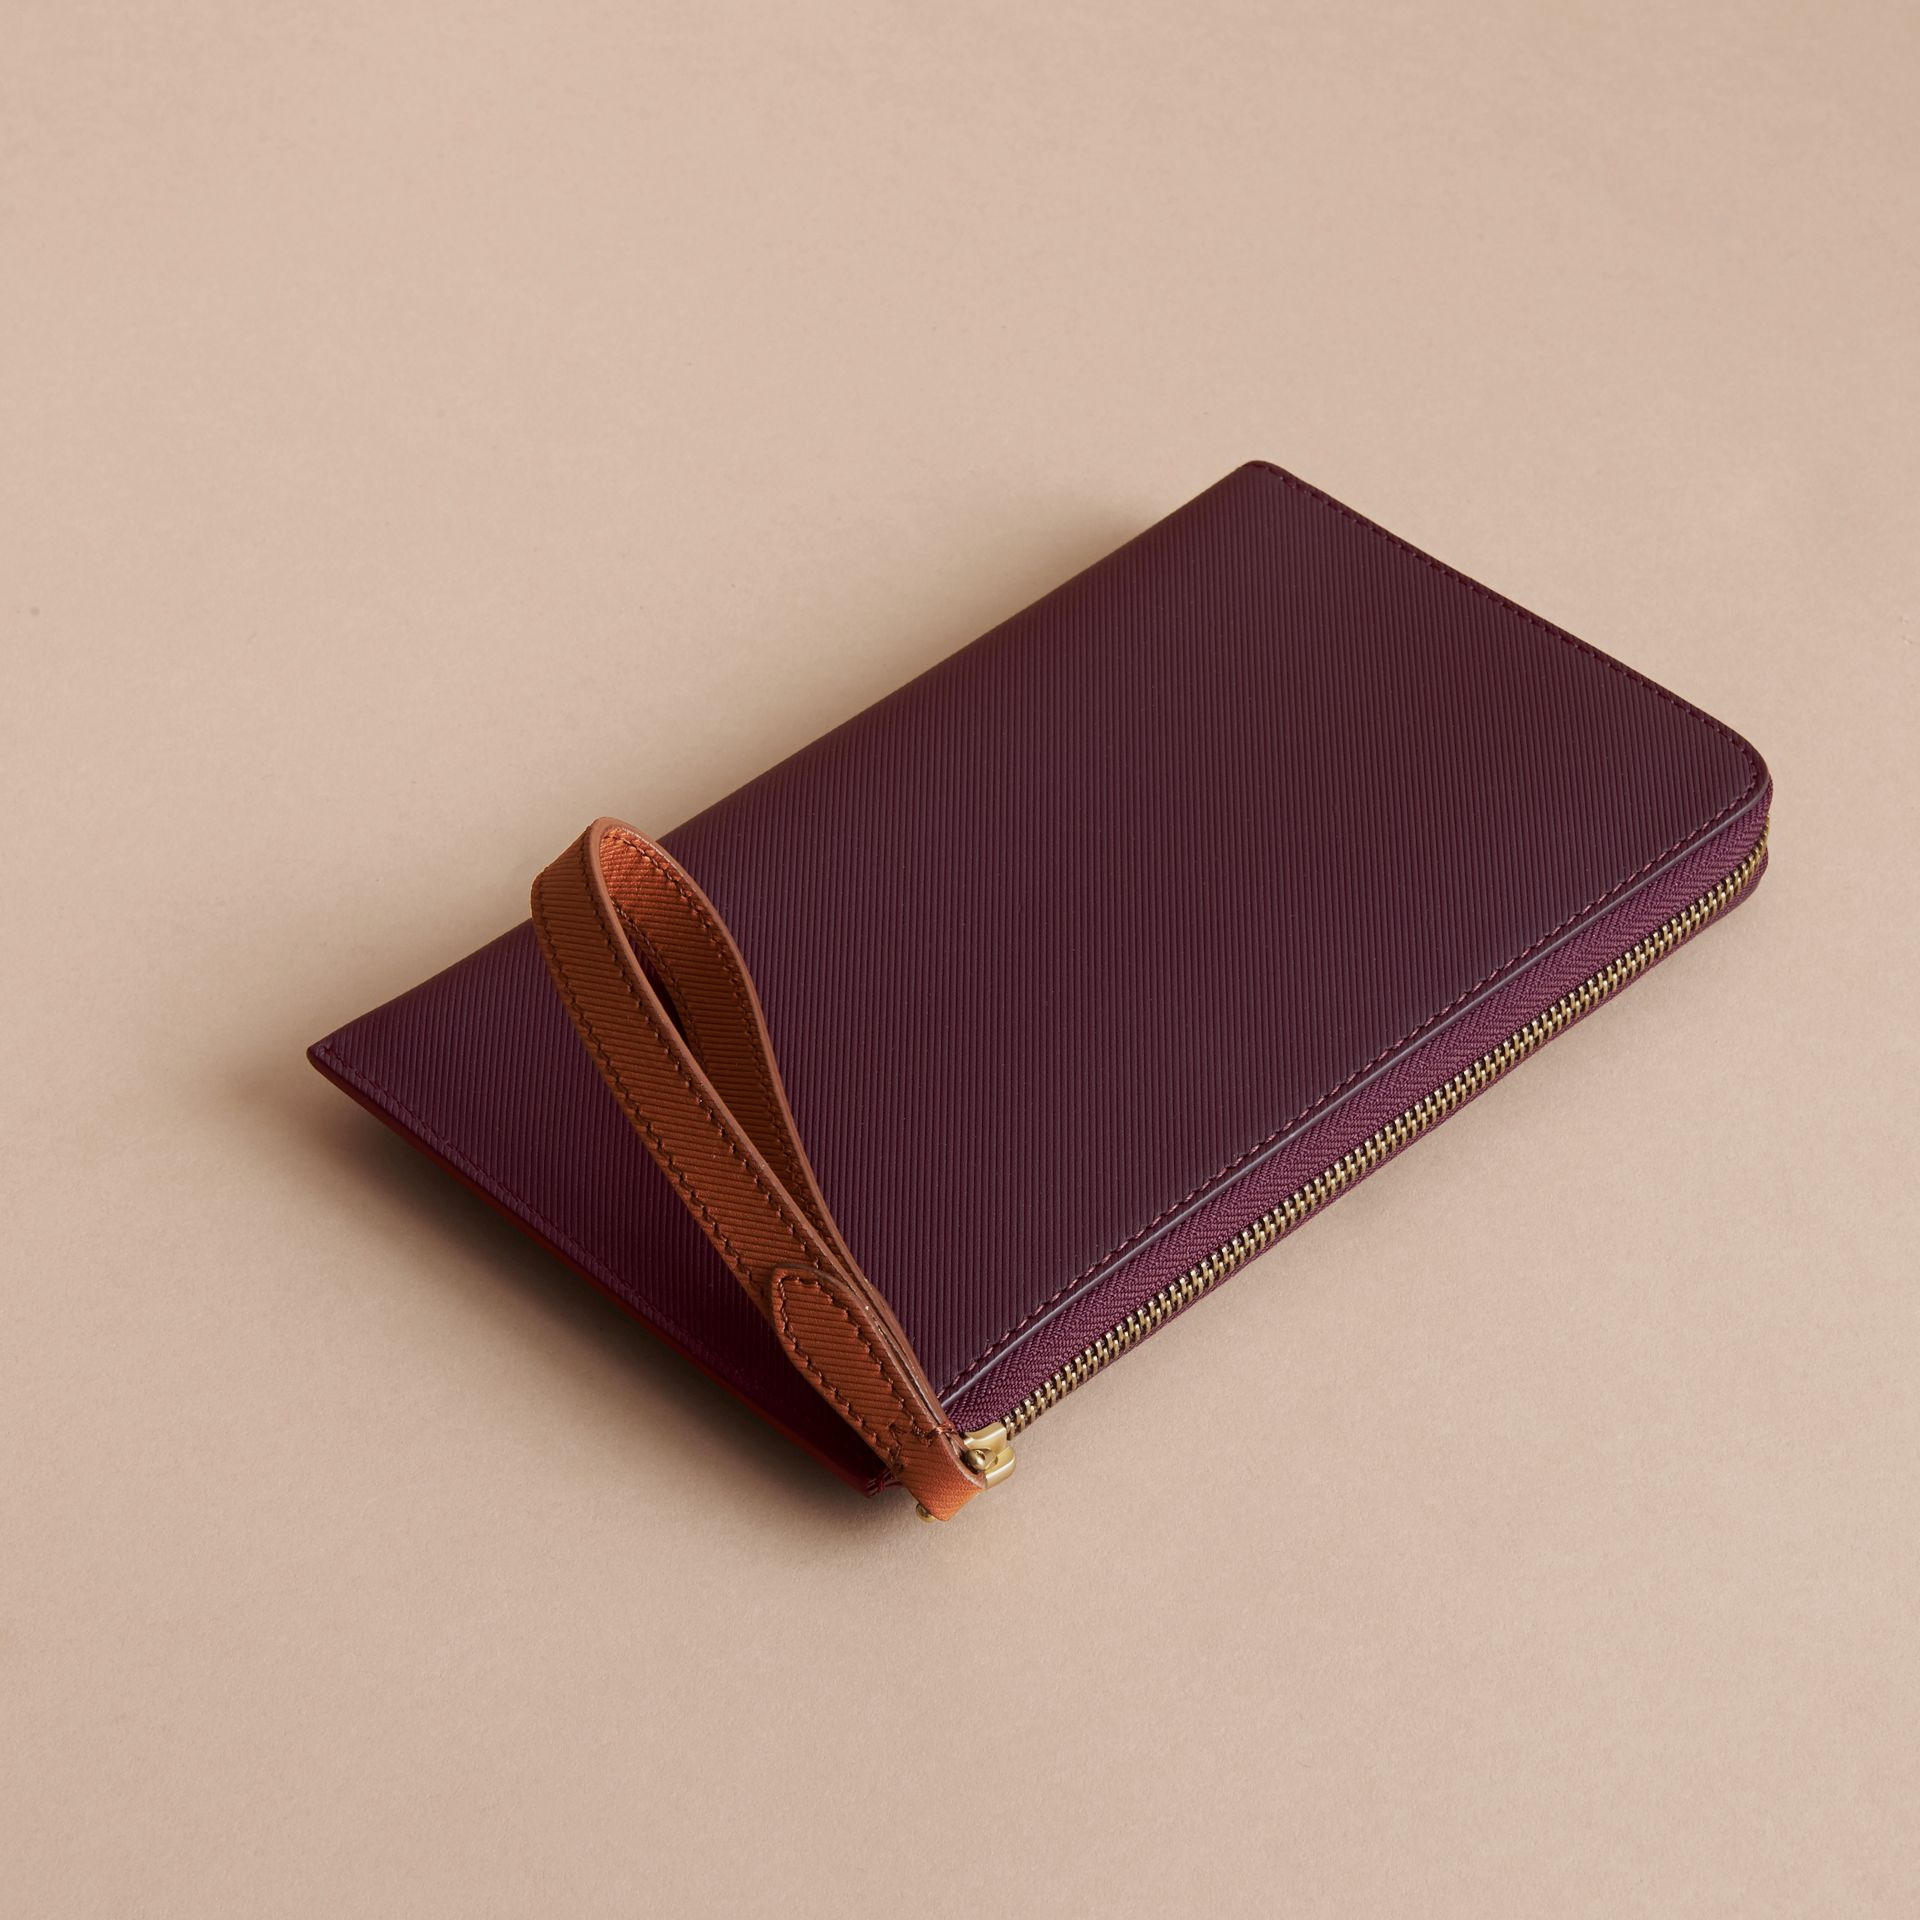 Two-tone Trench Leather Travel Wallet in Wine - Men | Burberry - gallery image 3